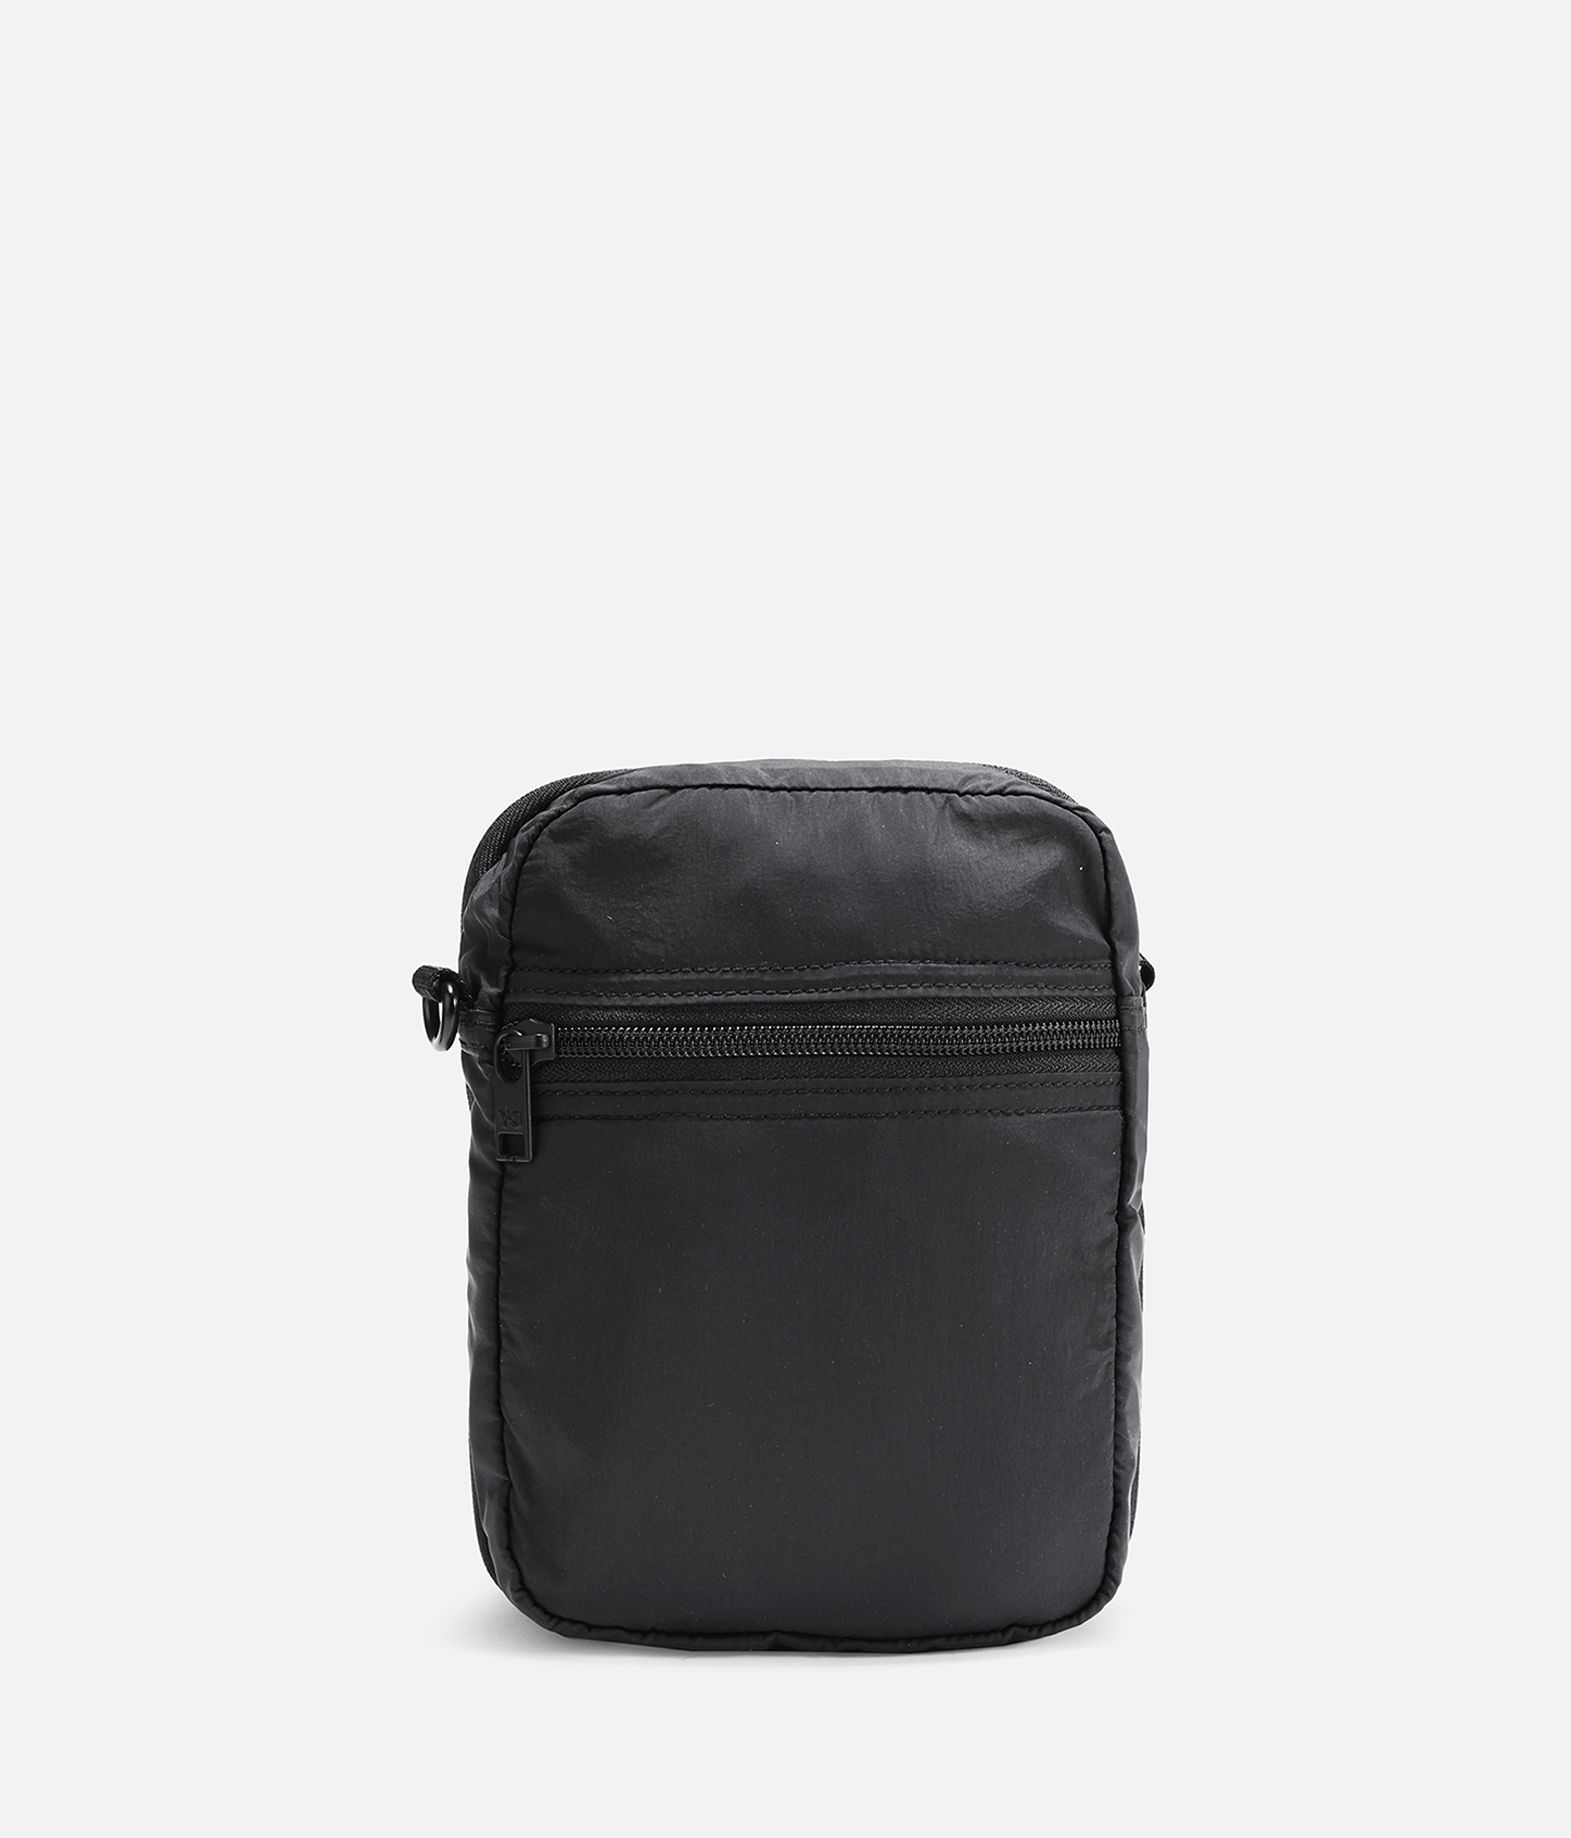 Y-3 Y-3 Packable Airliner Bag ショルダーバッグ E e